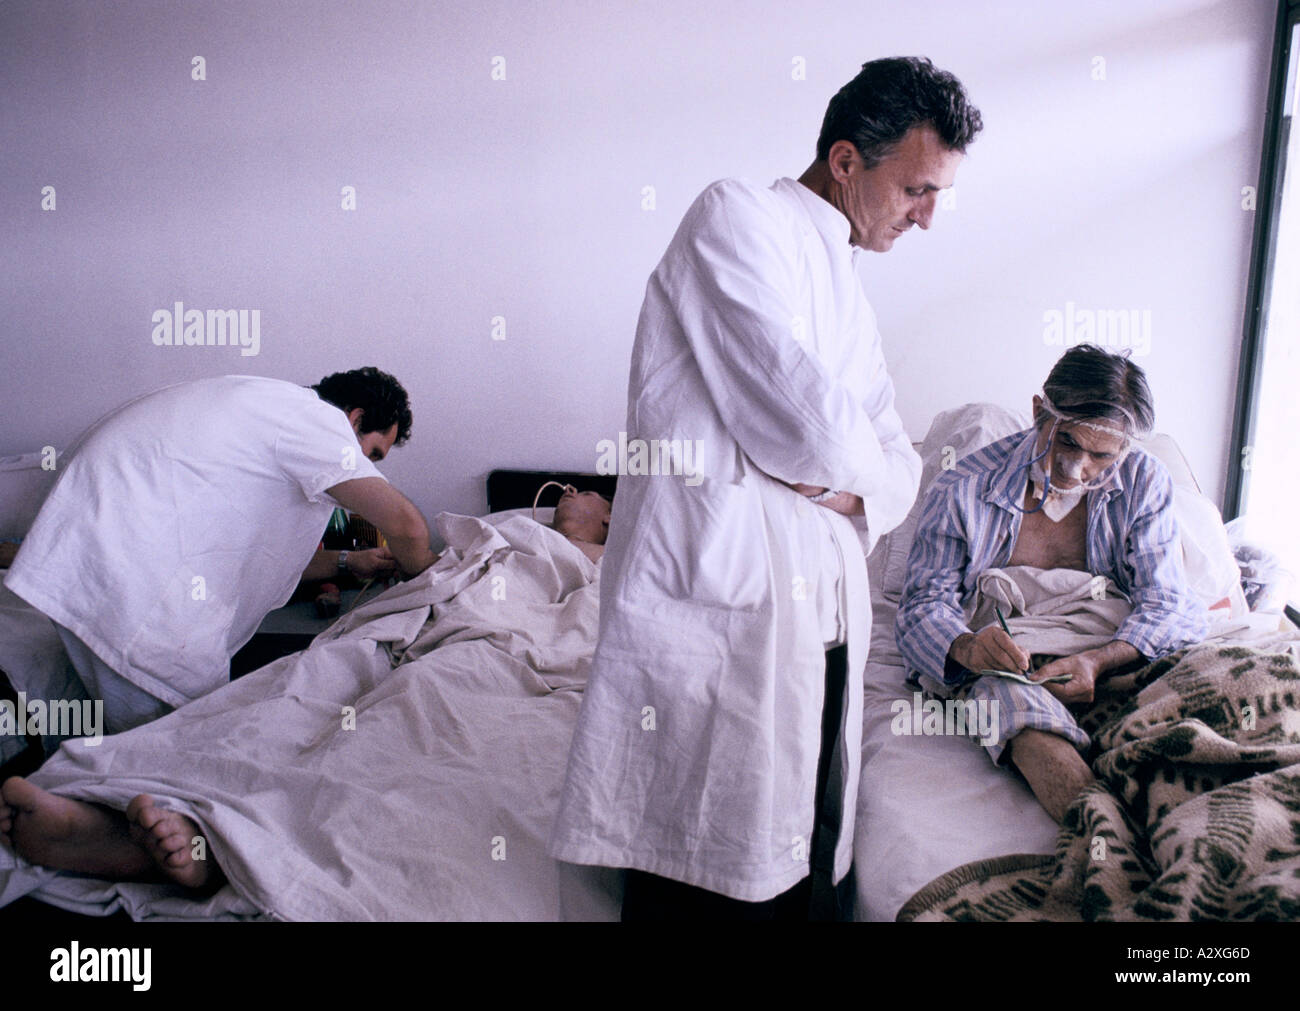 Socolitz, Bosnia, Sept 1992: wounded Bosnian Serb soldiers under treatment in Socolitz hospital Stock Photo